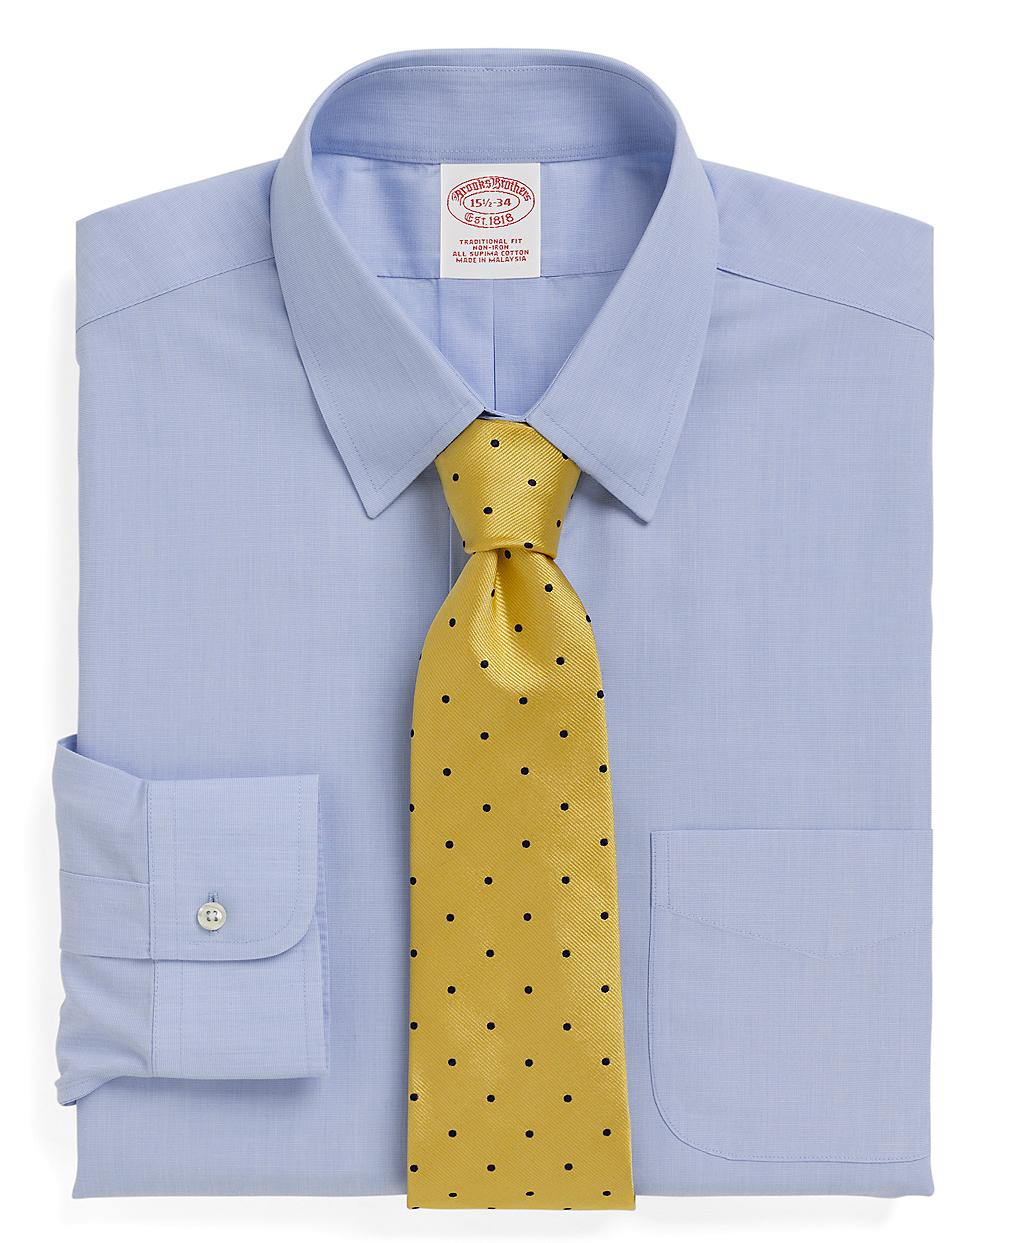 Brooks Brothers Non Iron Traditional Fit Tab Collar Dress